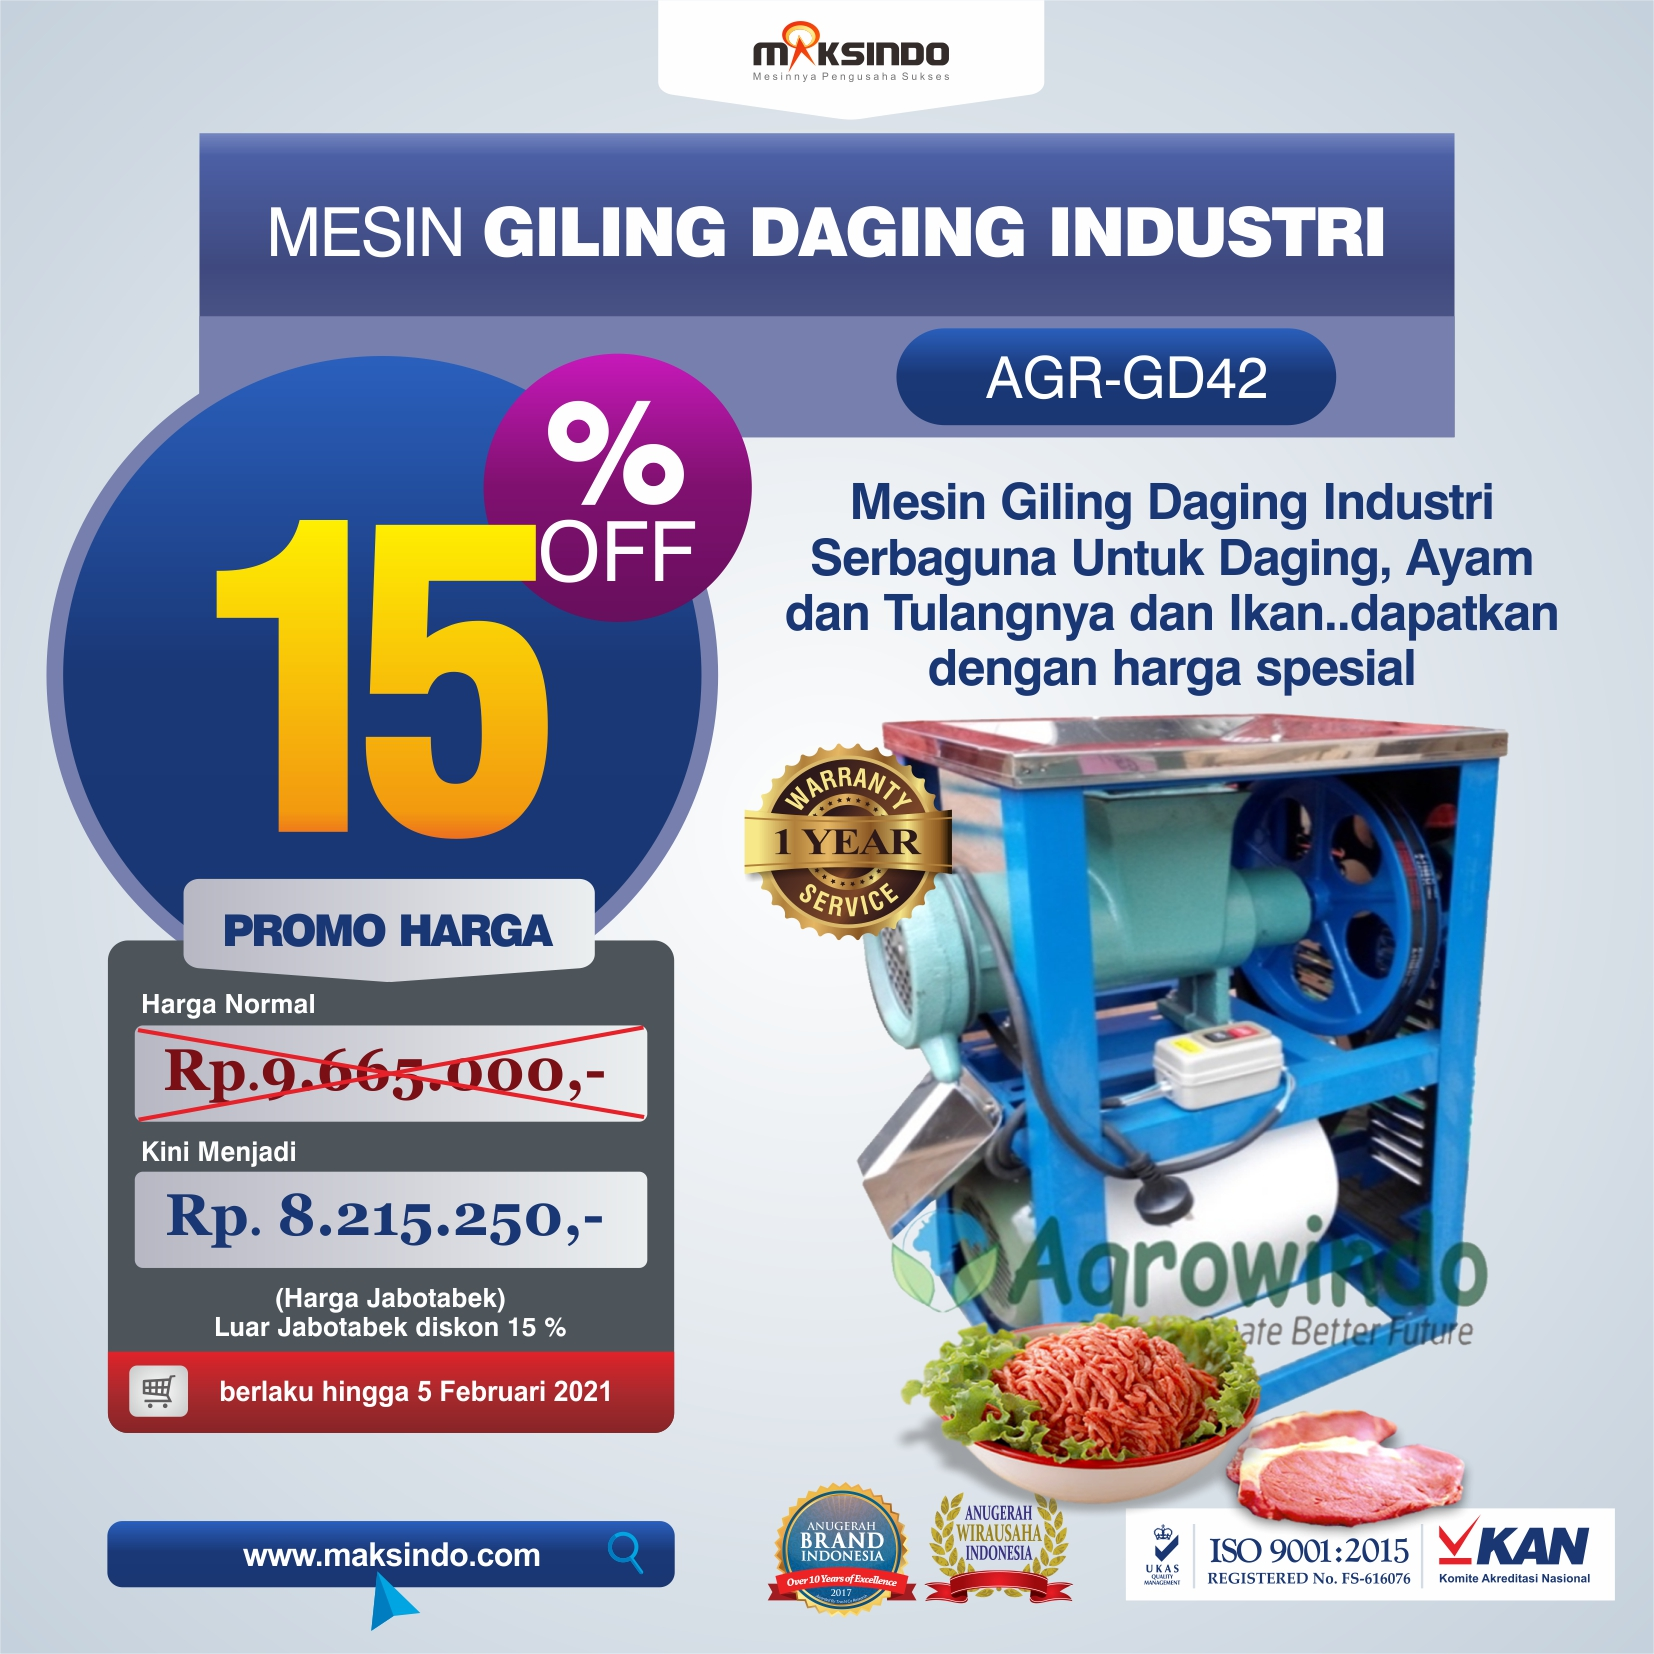 Mesin Giling Daging Industri (AGR-GD42)